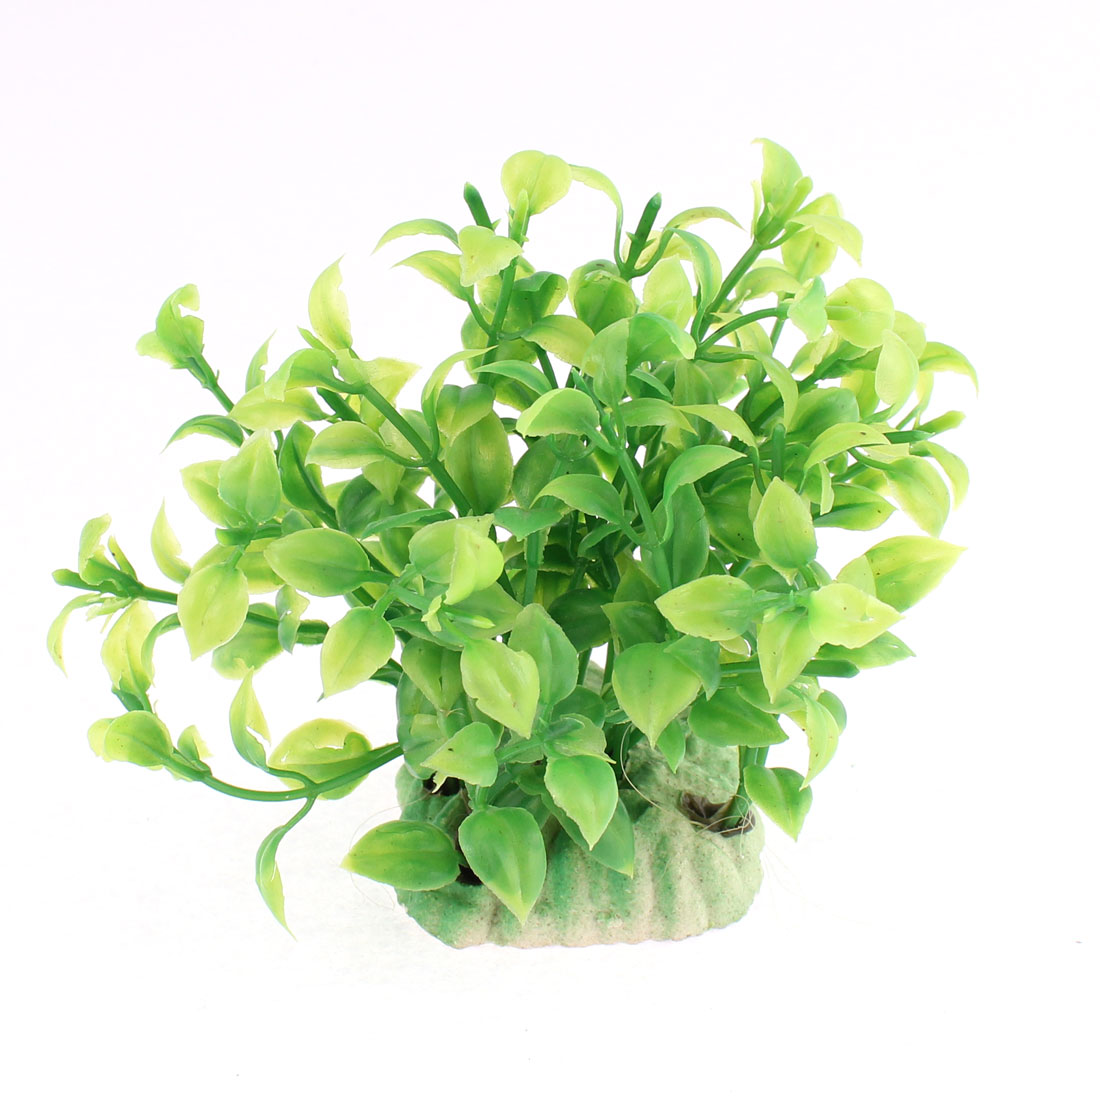 Aquarium Plastic Manmade Aquascaping Plant Decoration